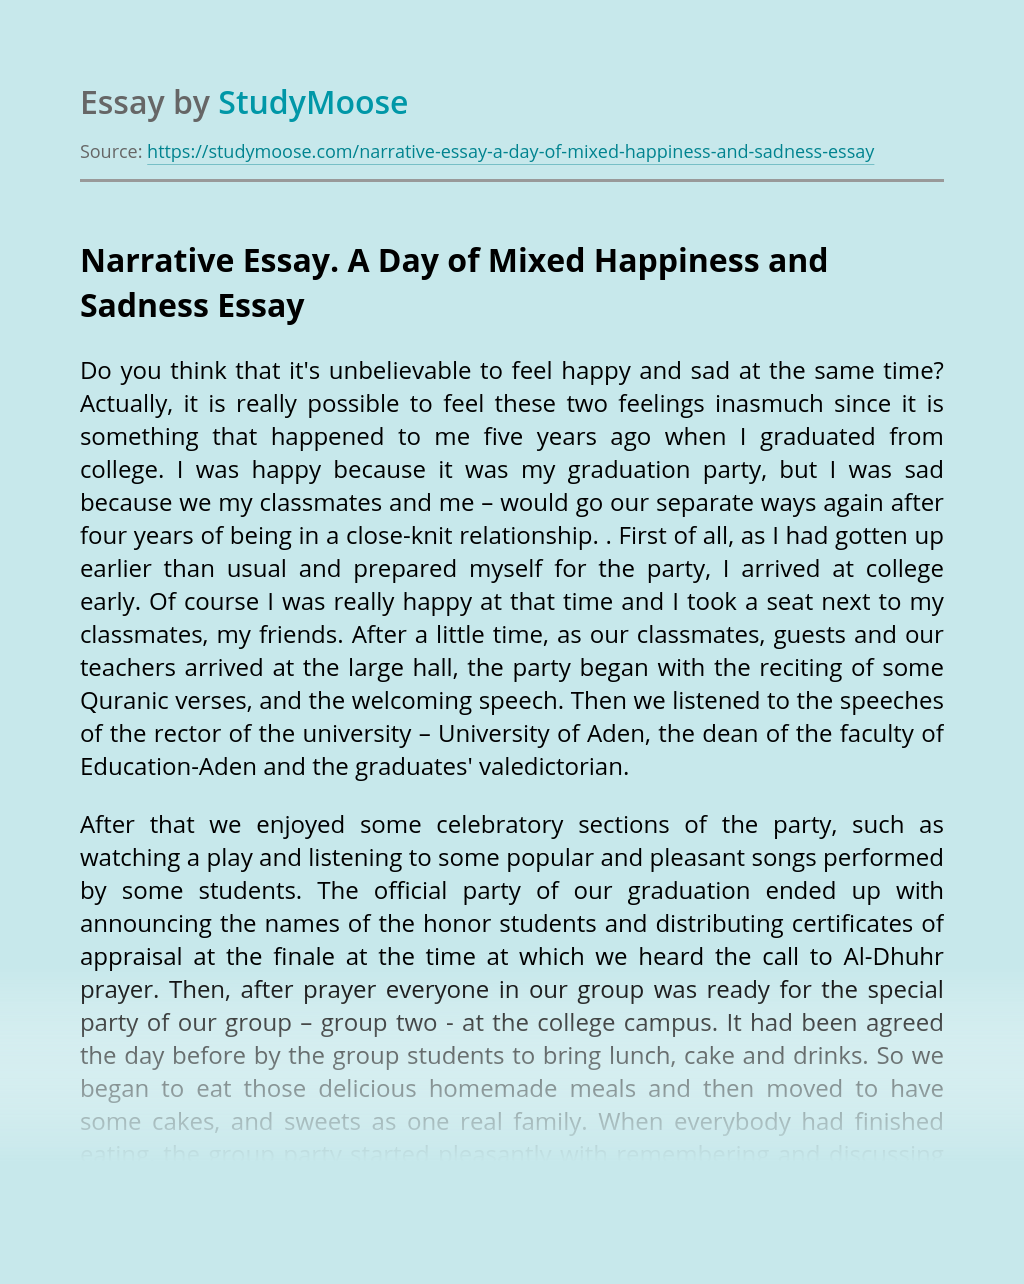 Narrative Essay. A Day of Mixed Happiness and Sadness